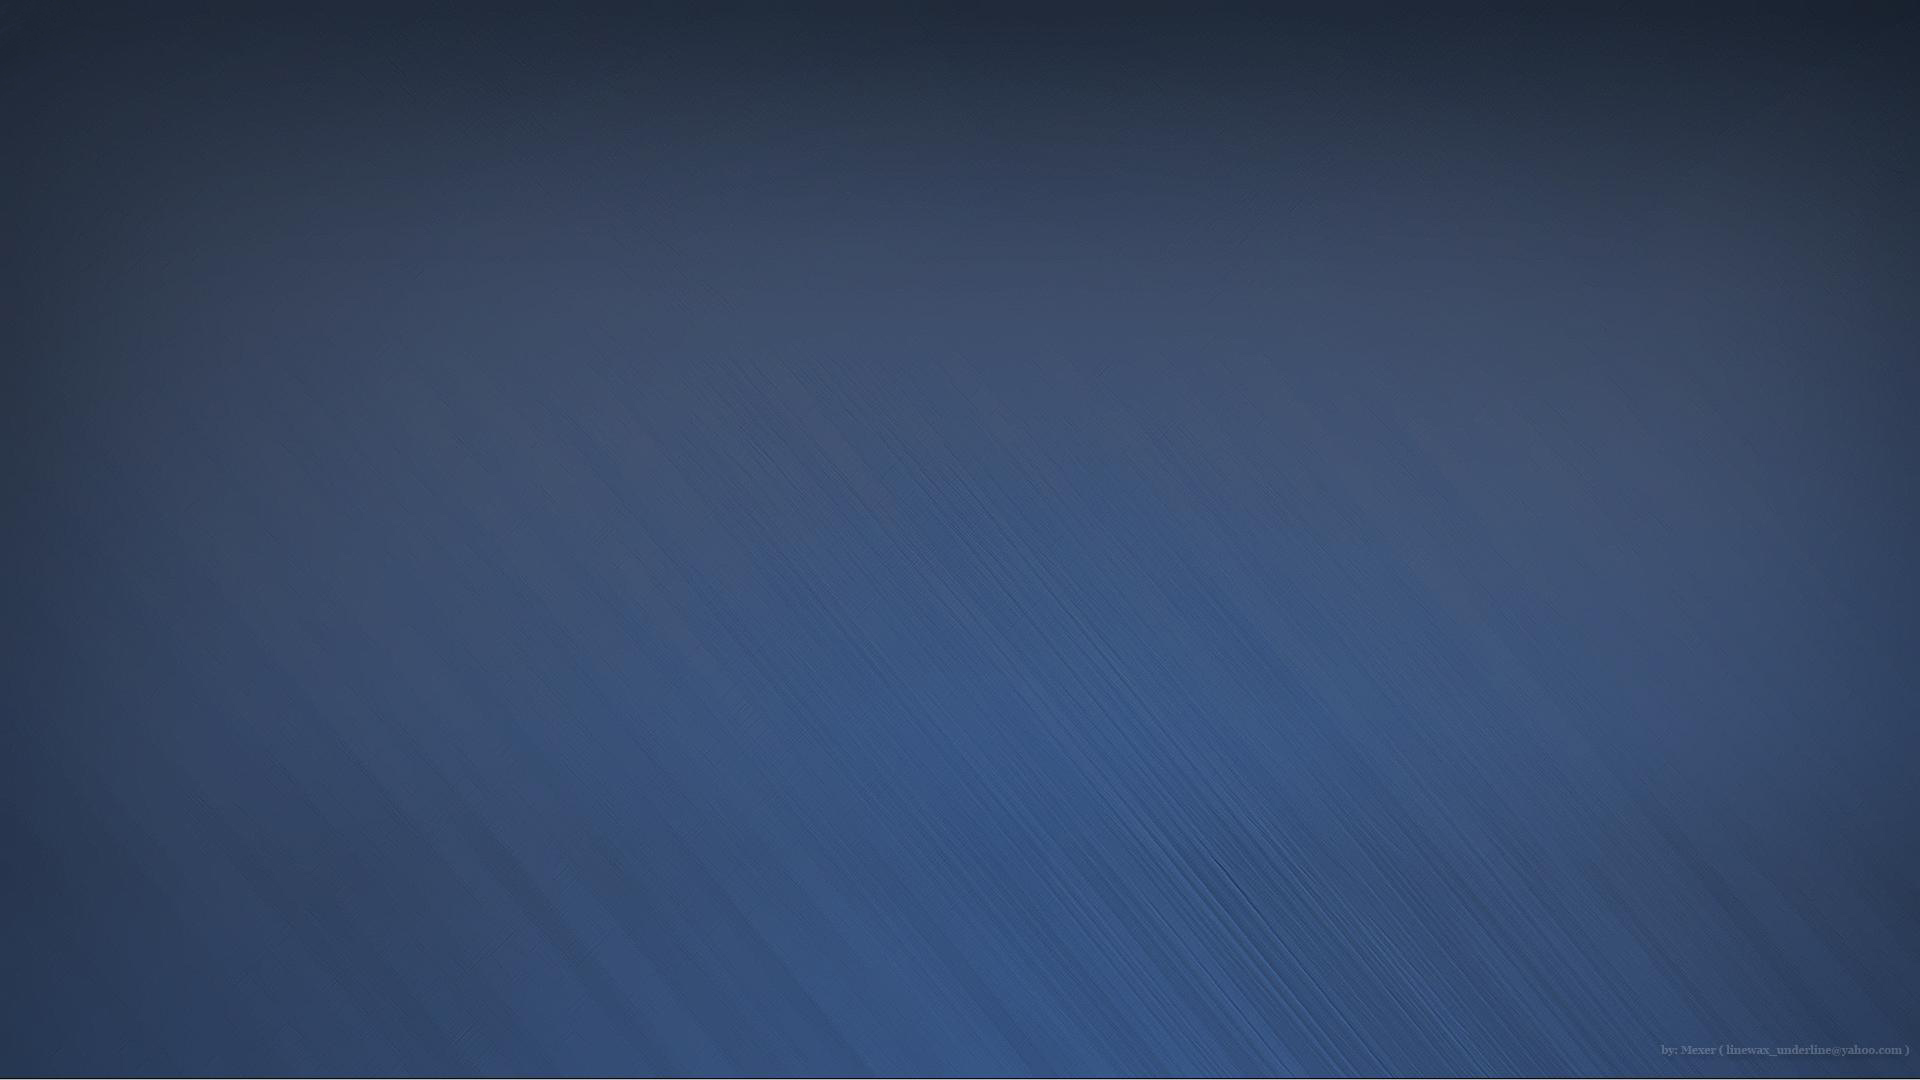 simple blue wallpaper by mexer customization wallpaper minimalistic .